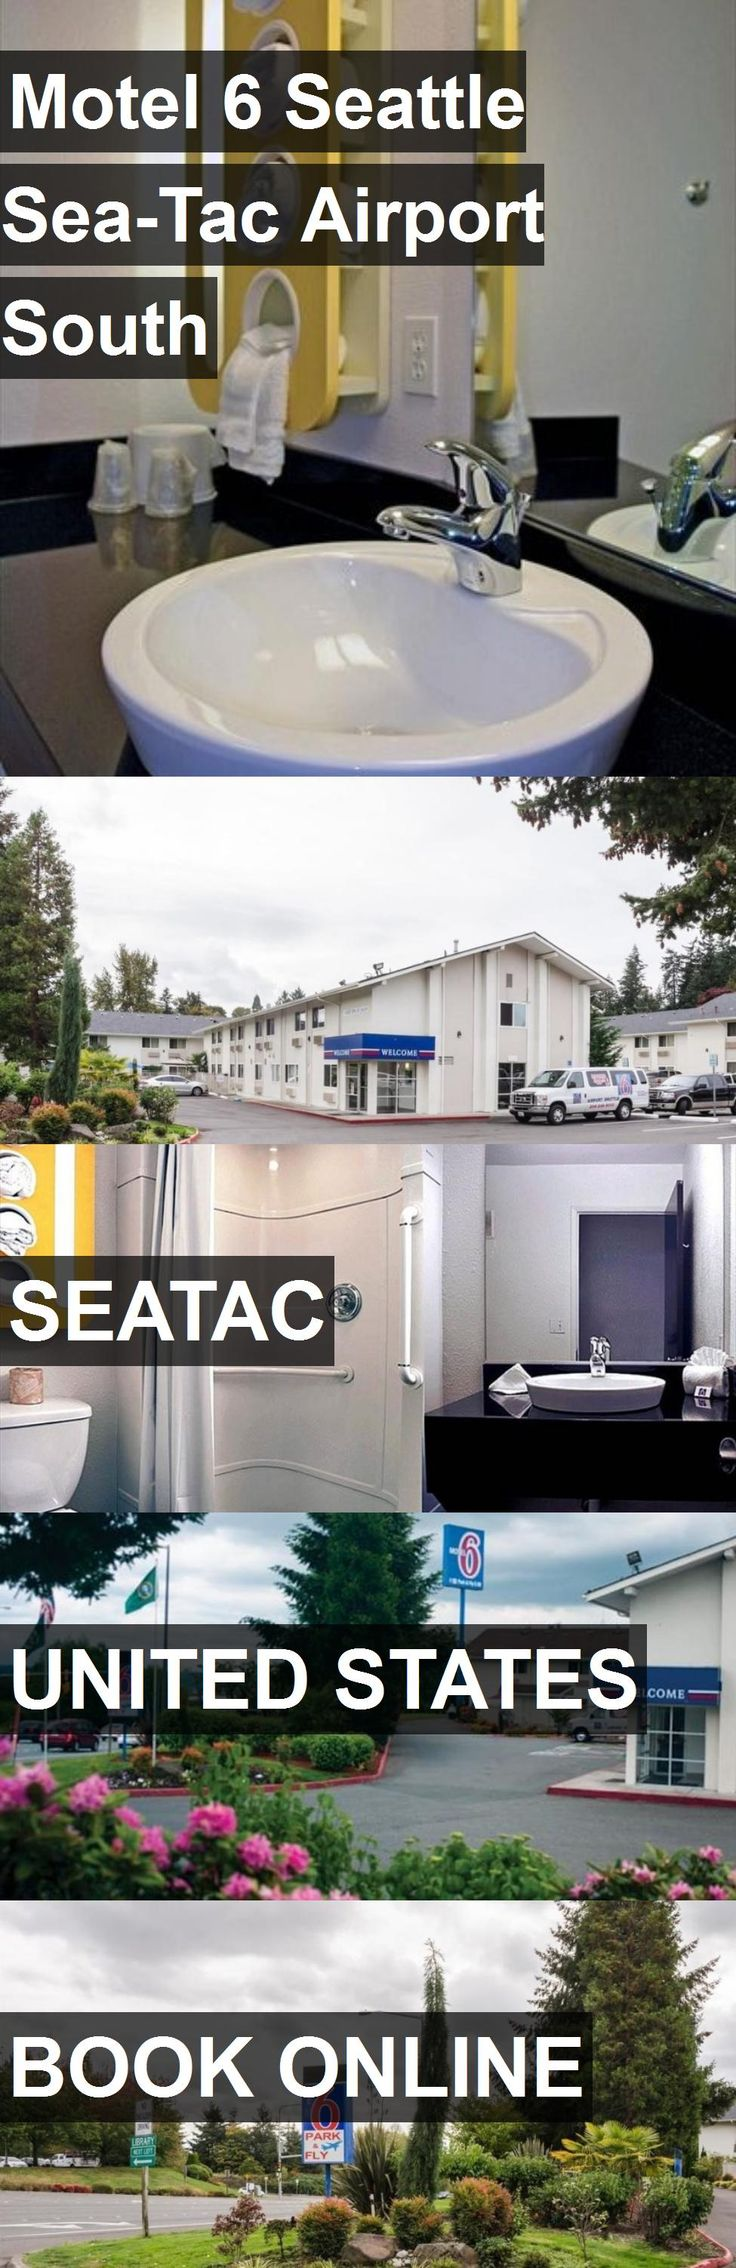 Hotel Motel 6 Seattle Sea-Tac Airport South in Seatac, United States. For more information, photos, reviews and best prices please follow the link. #UnitedStates #Seatac #travel #vacation #hotel